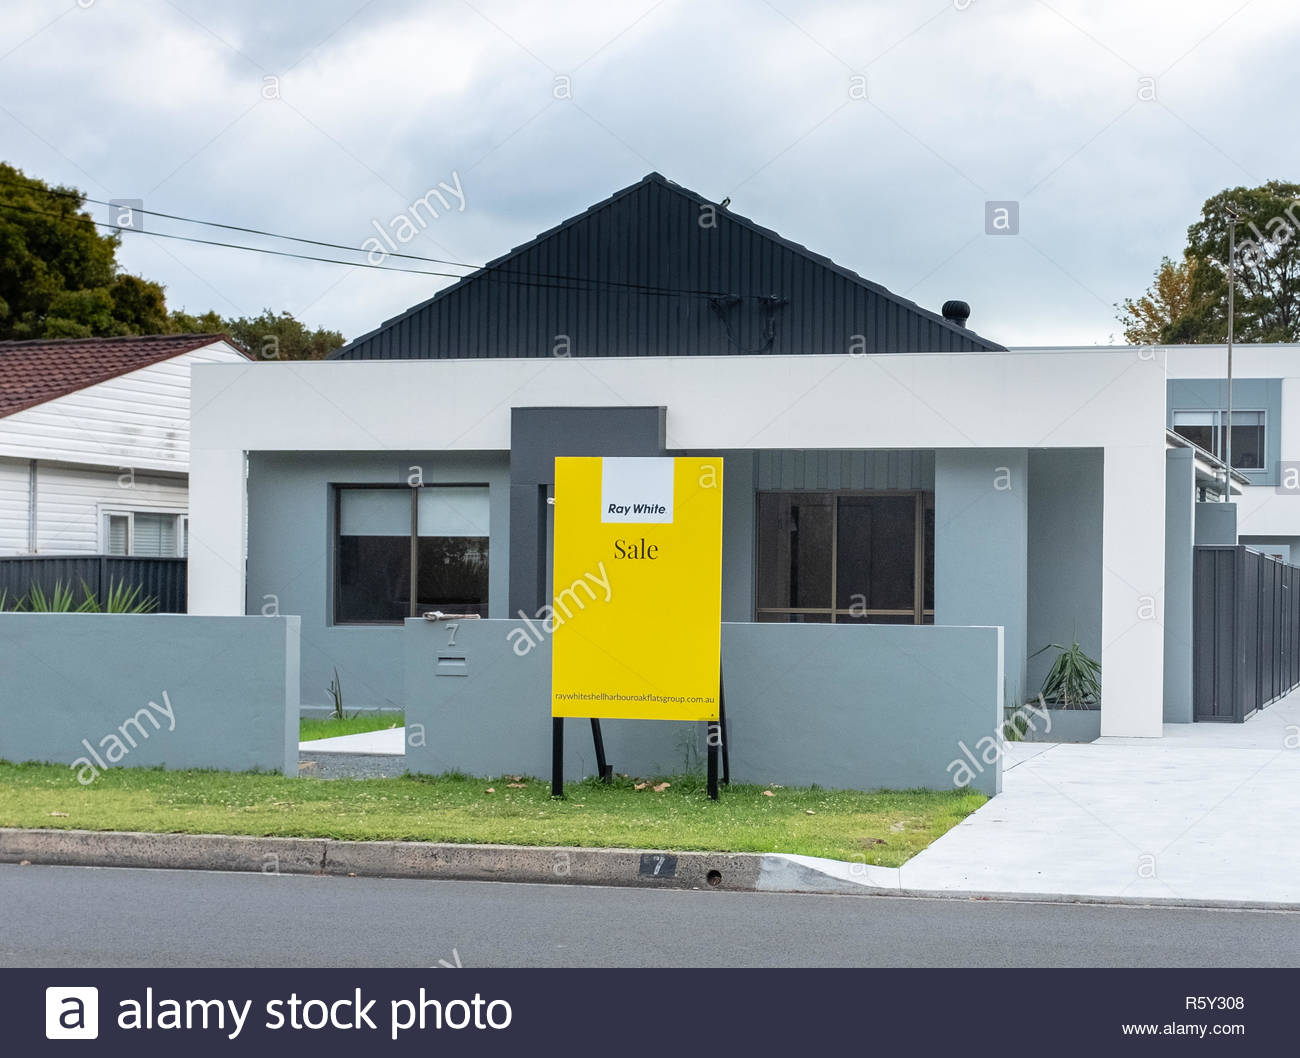 Australian For Sale signs Ray White estate agent, outside new build house, NSW, Australia - Stock Image